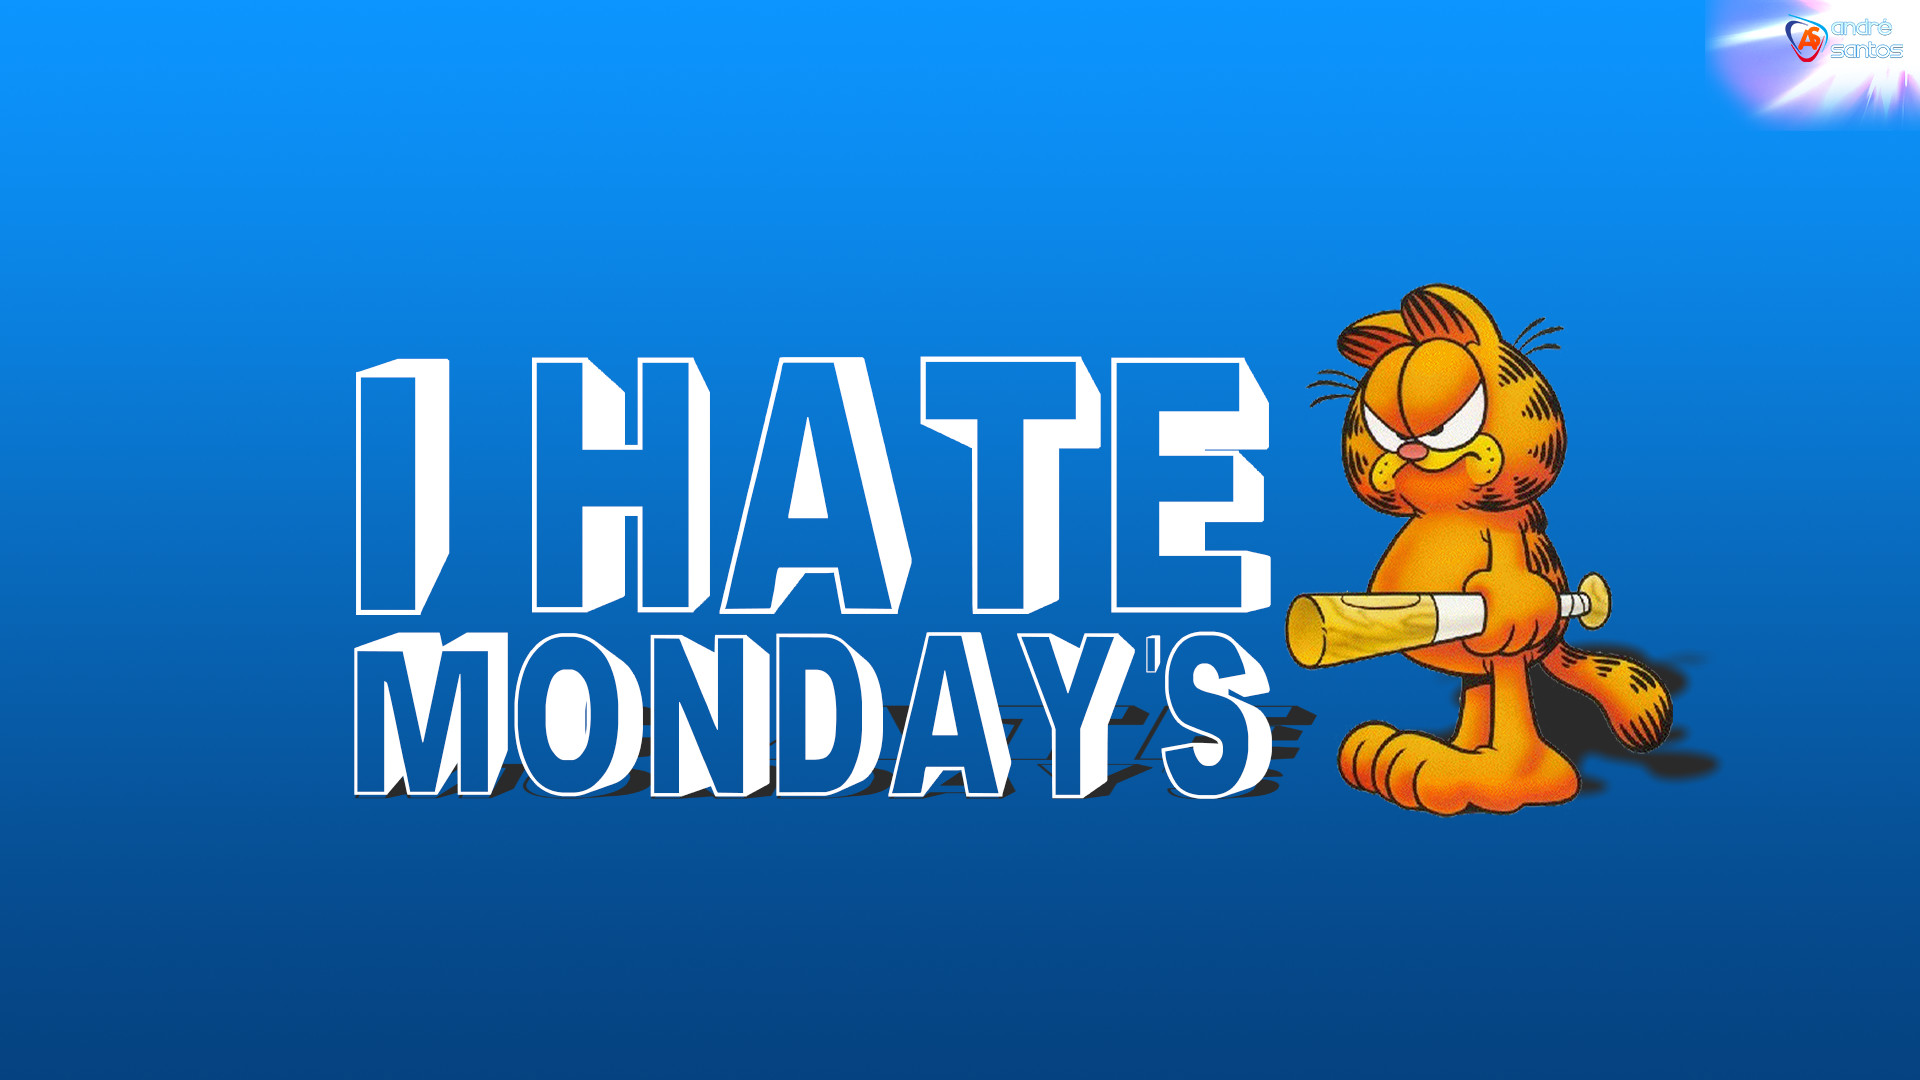 1920x1080 I Hate Mondays Garfield Picture